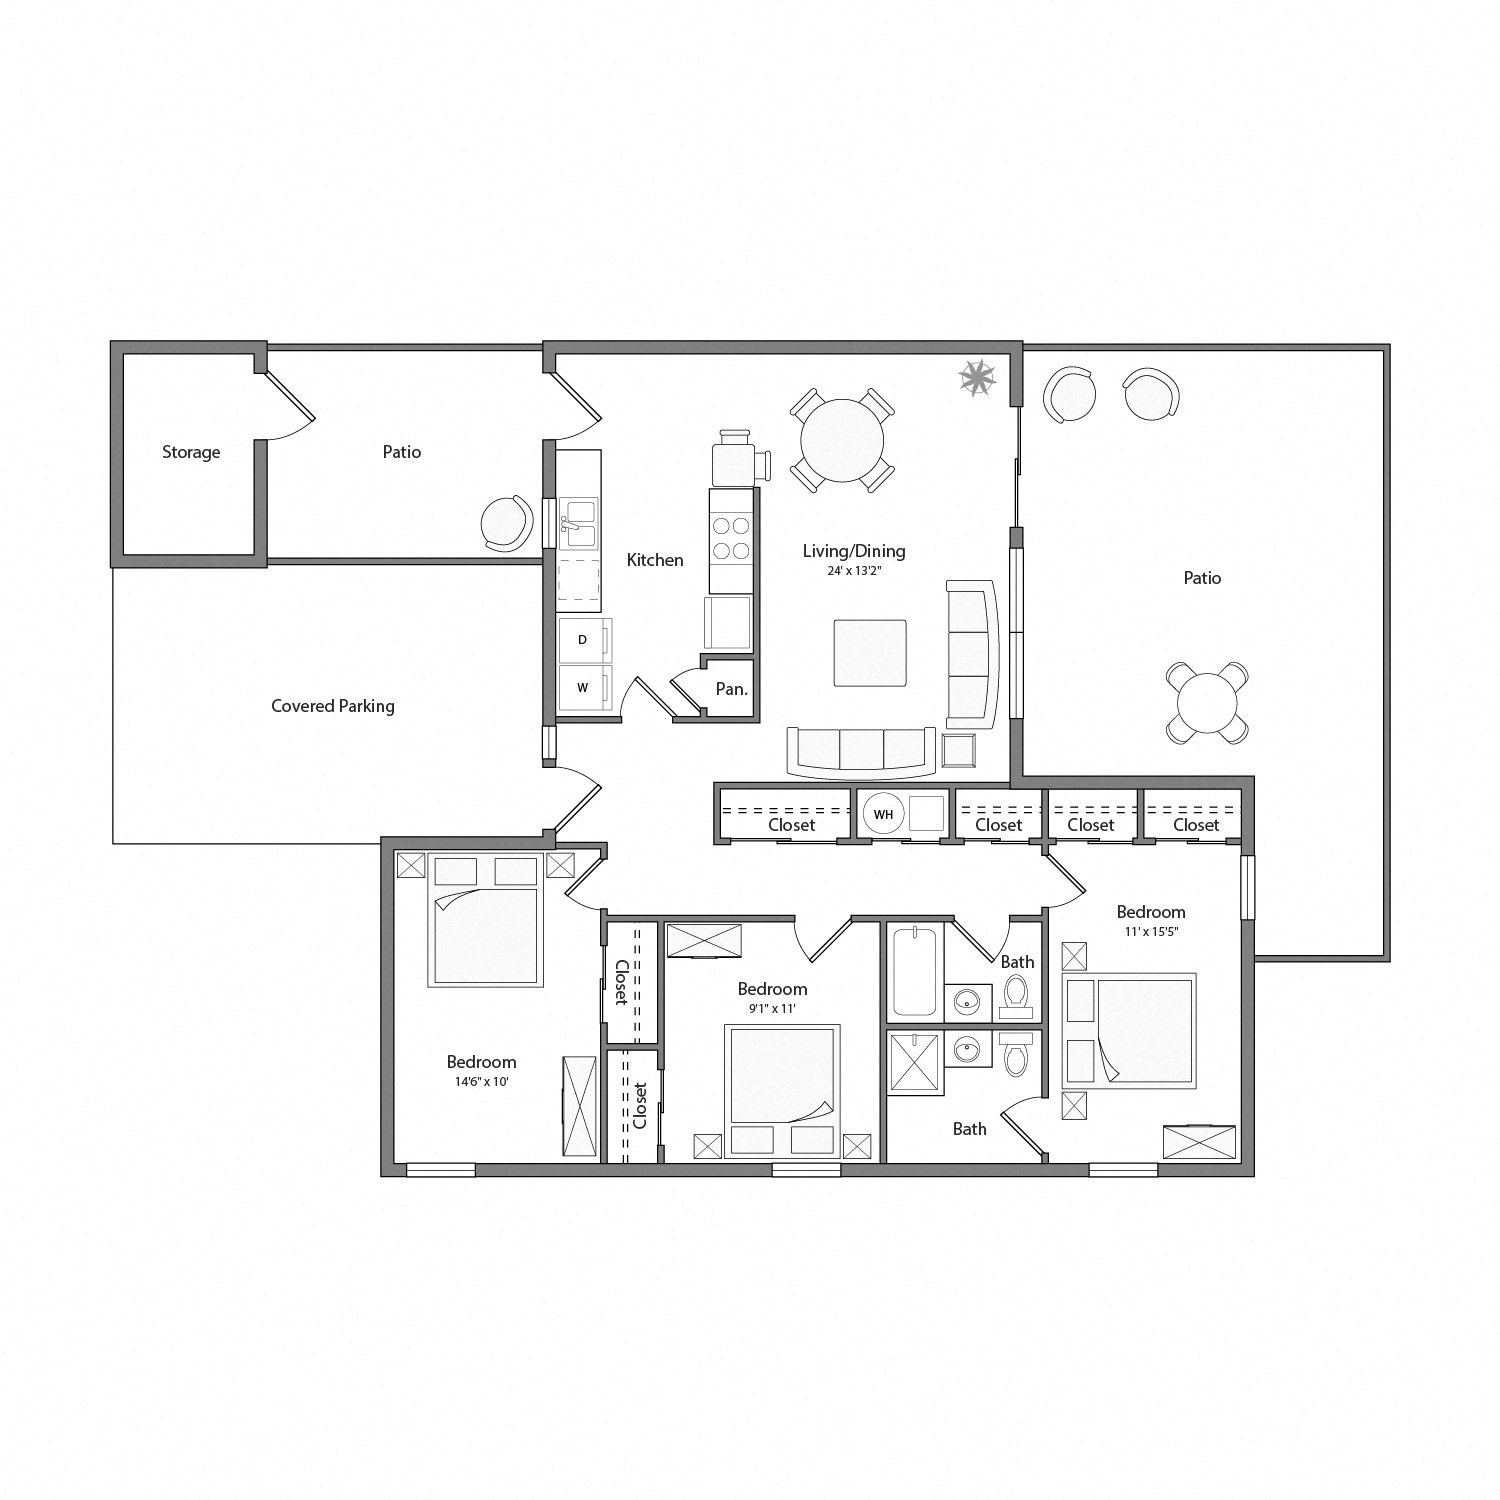 Magnolia house floor plan diagram. Three bedrooms, two bathrooms, a kitchen and adjacent laundry, an open living and dining area, two patios, and a covered parking area.